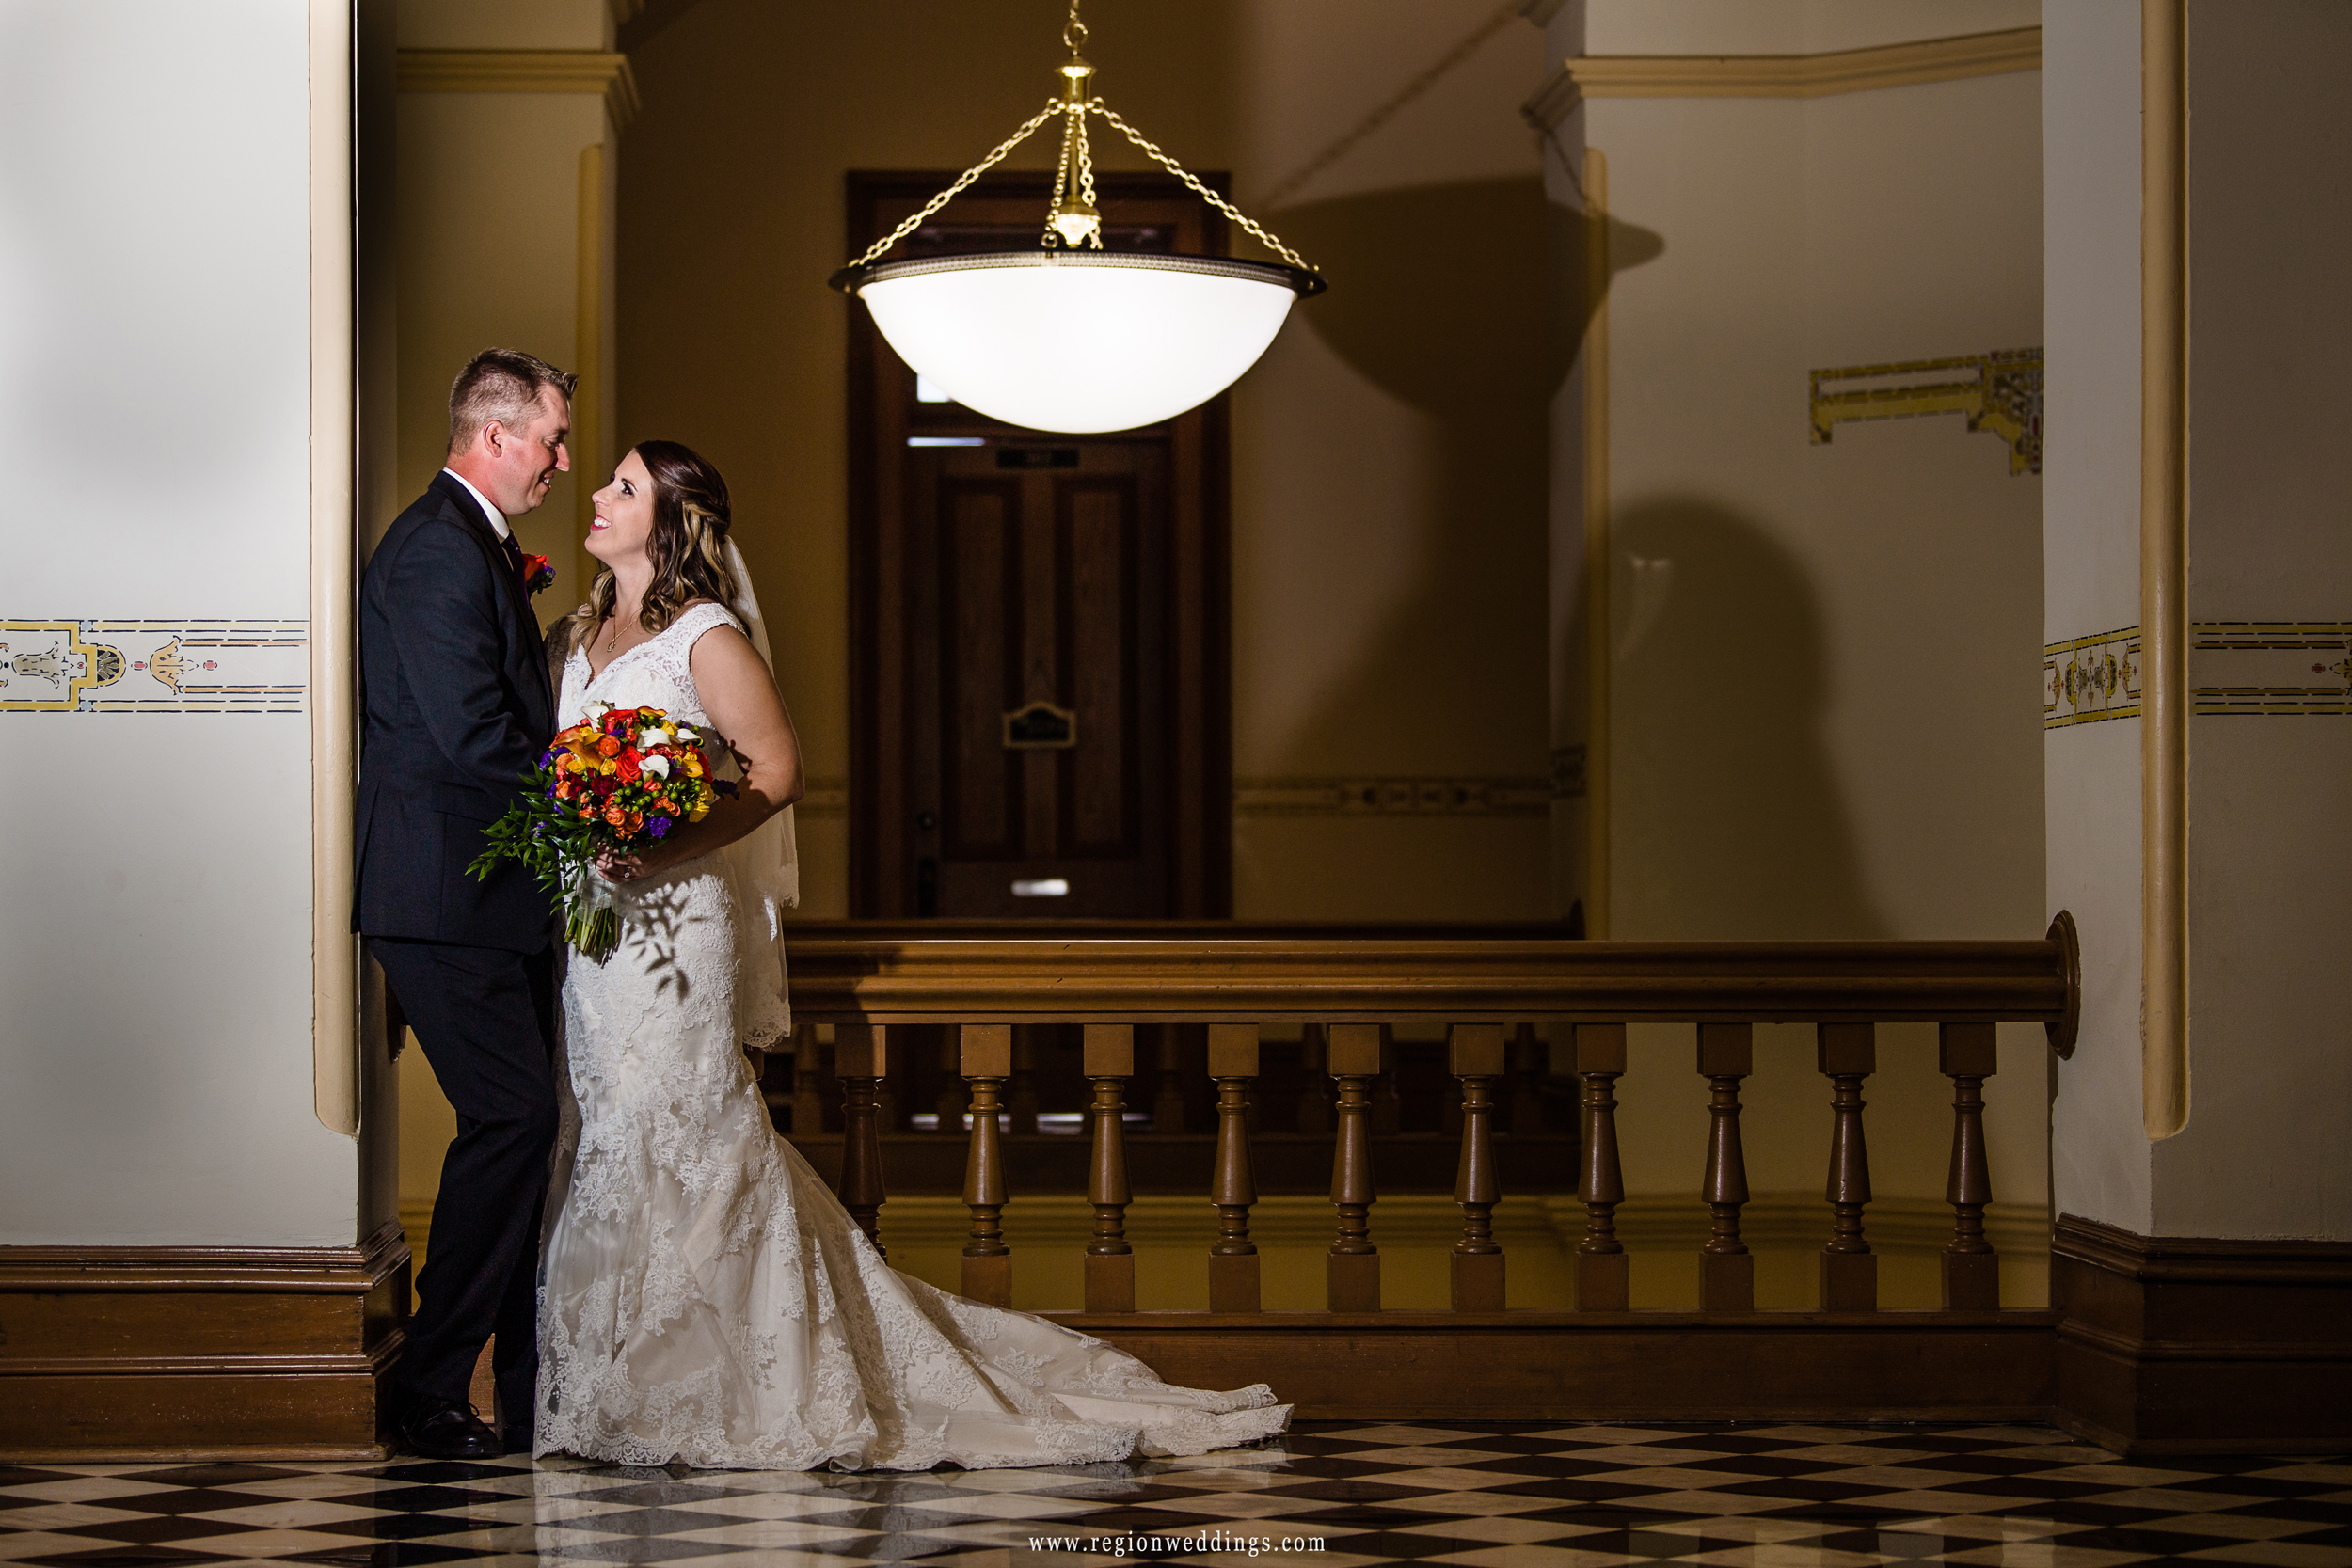 Bride and groom on the historic third floor of the Crown Point Courthouse.